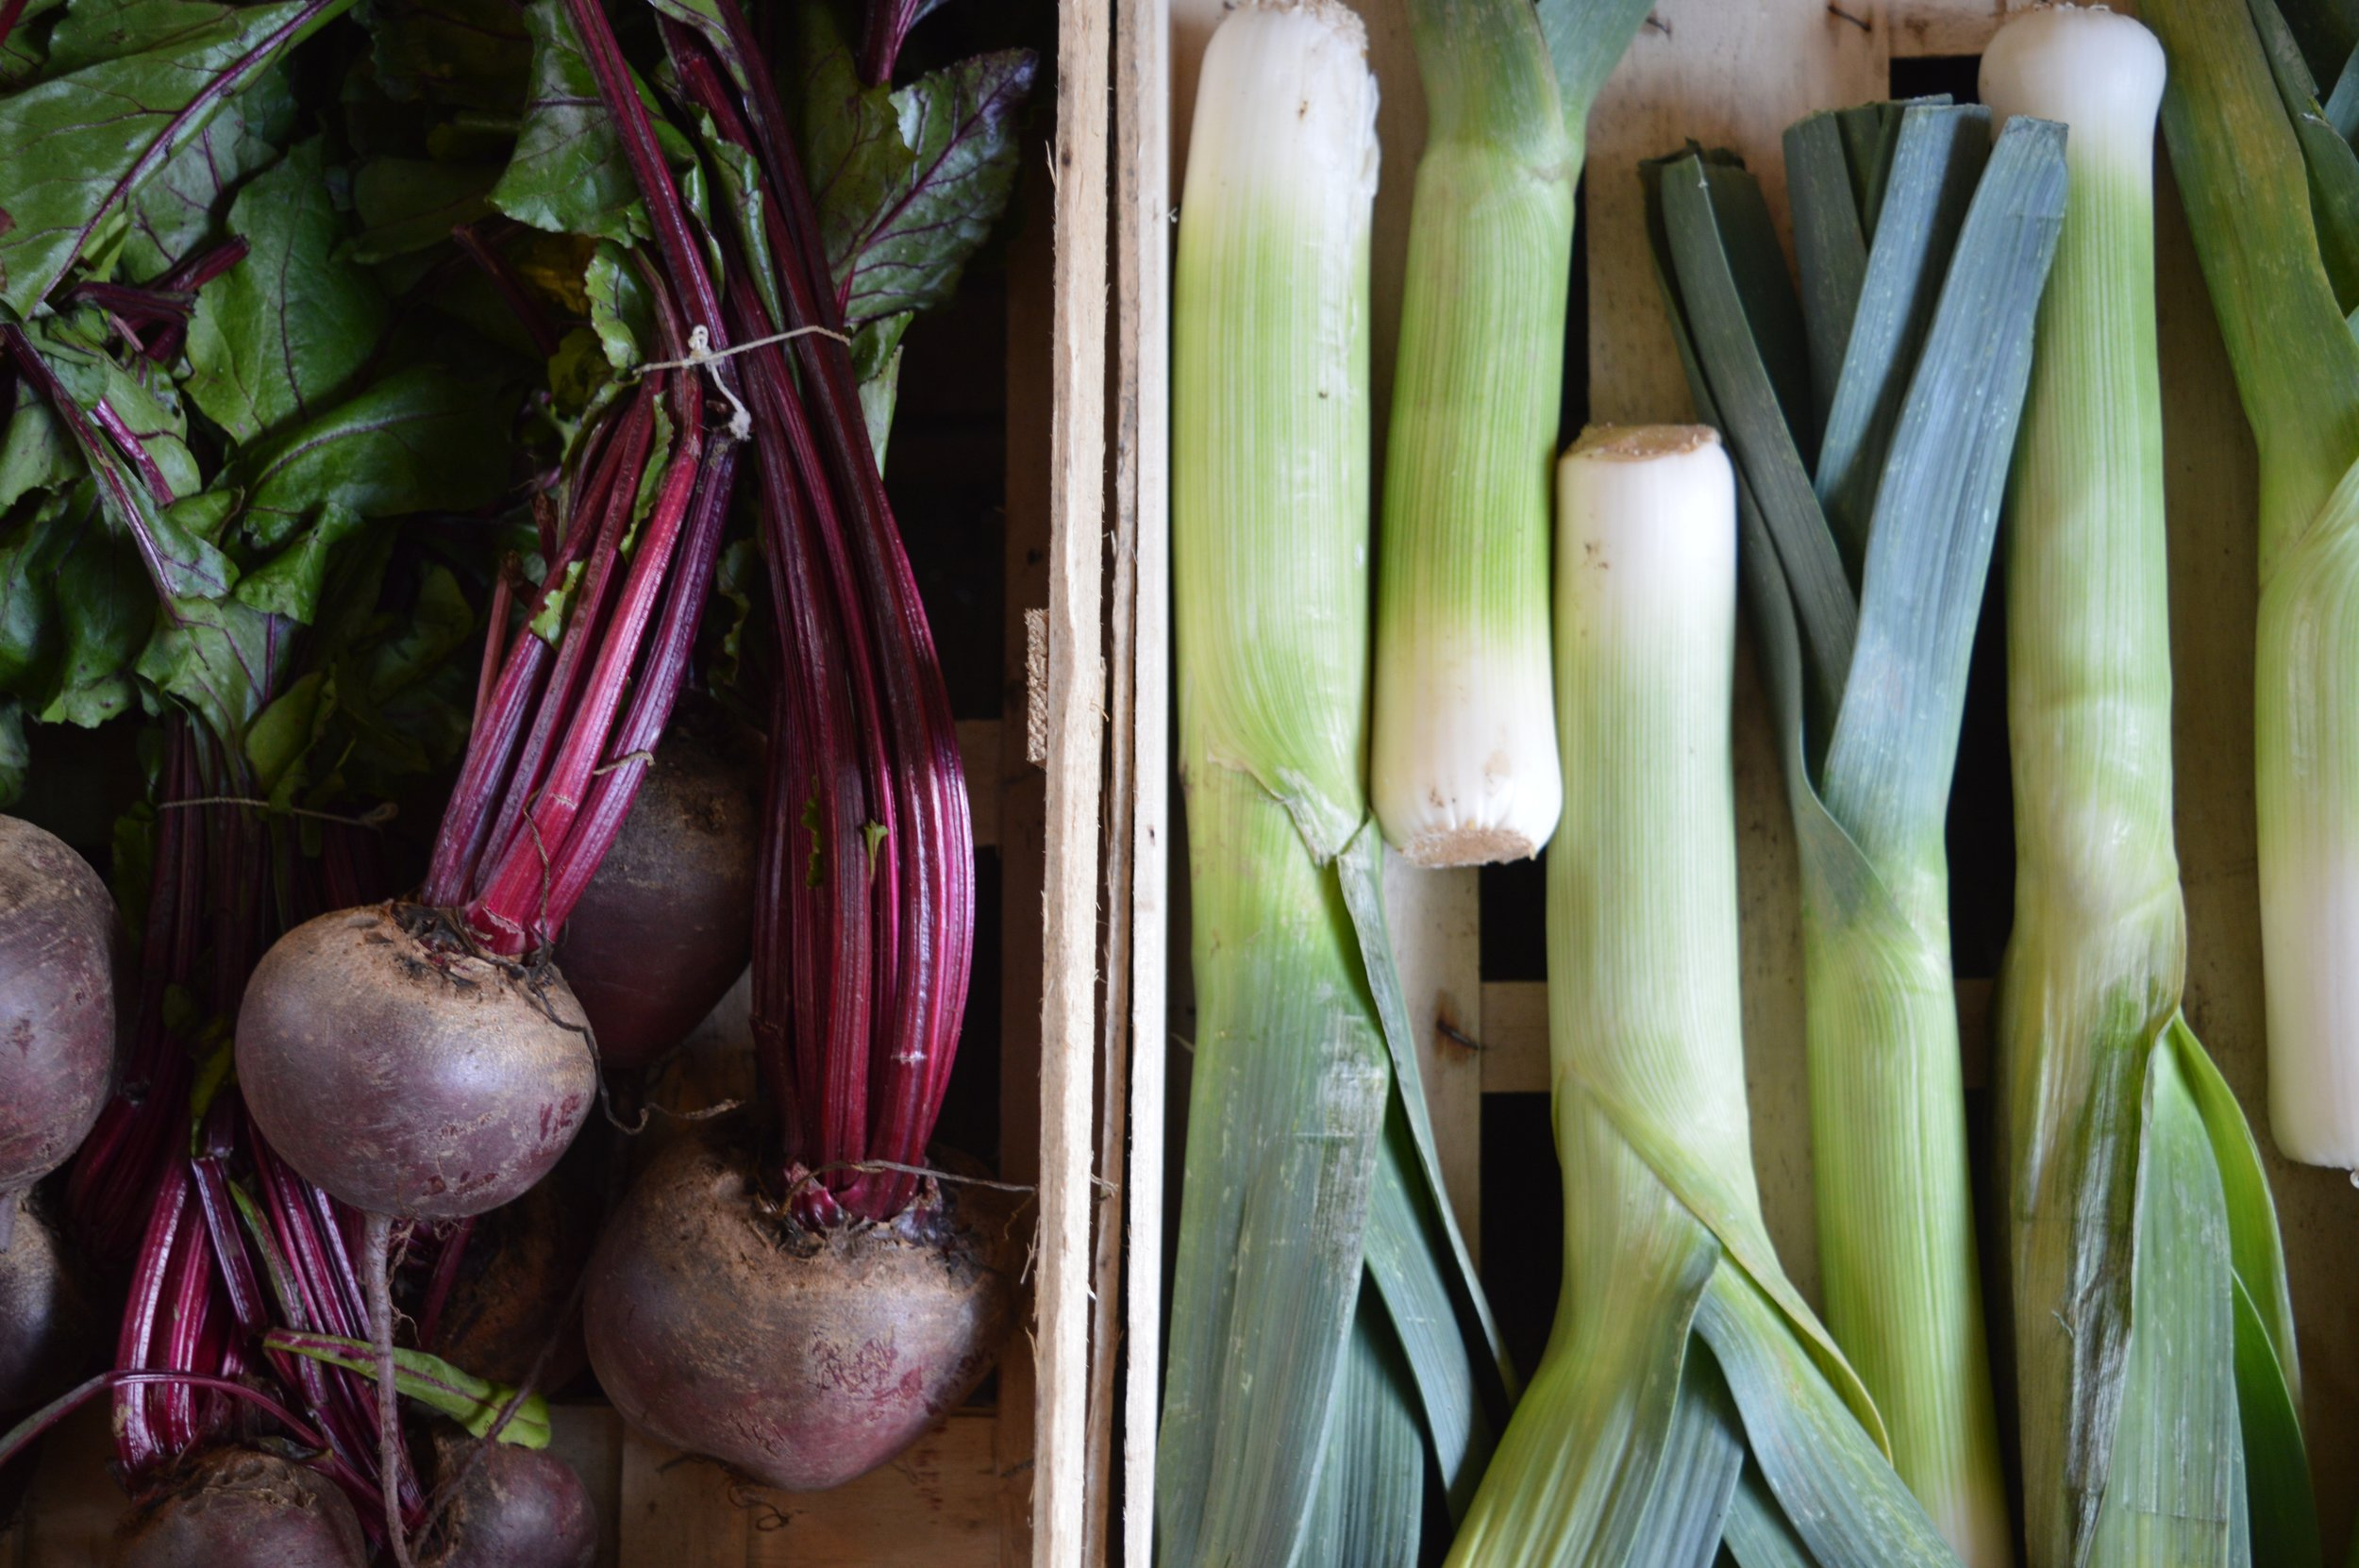 Beets n leeks. Your body loves 'em. Don't forget to eat the beet greens!